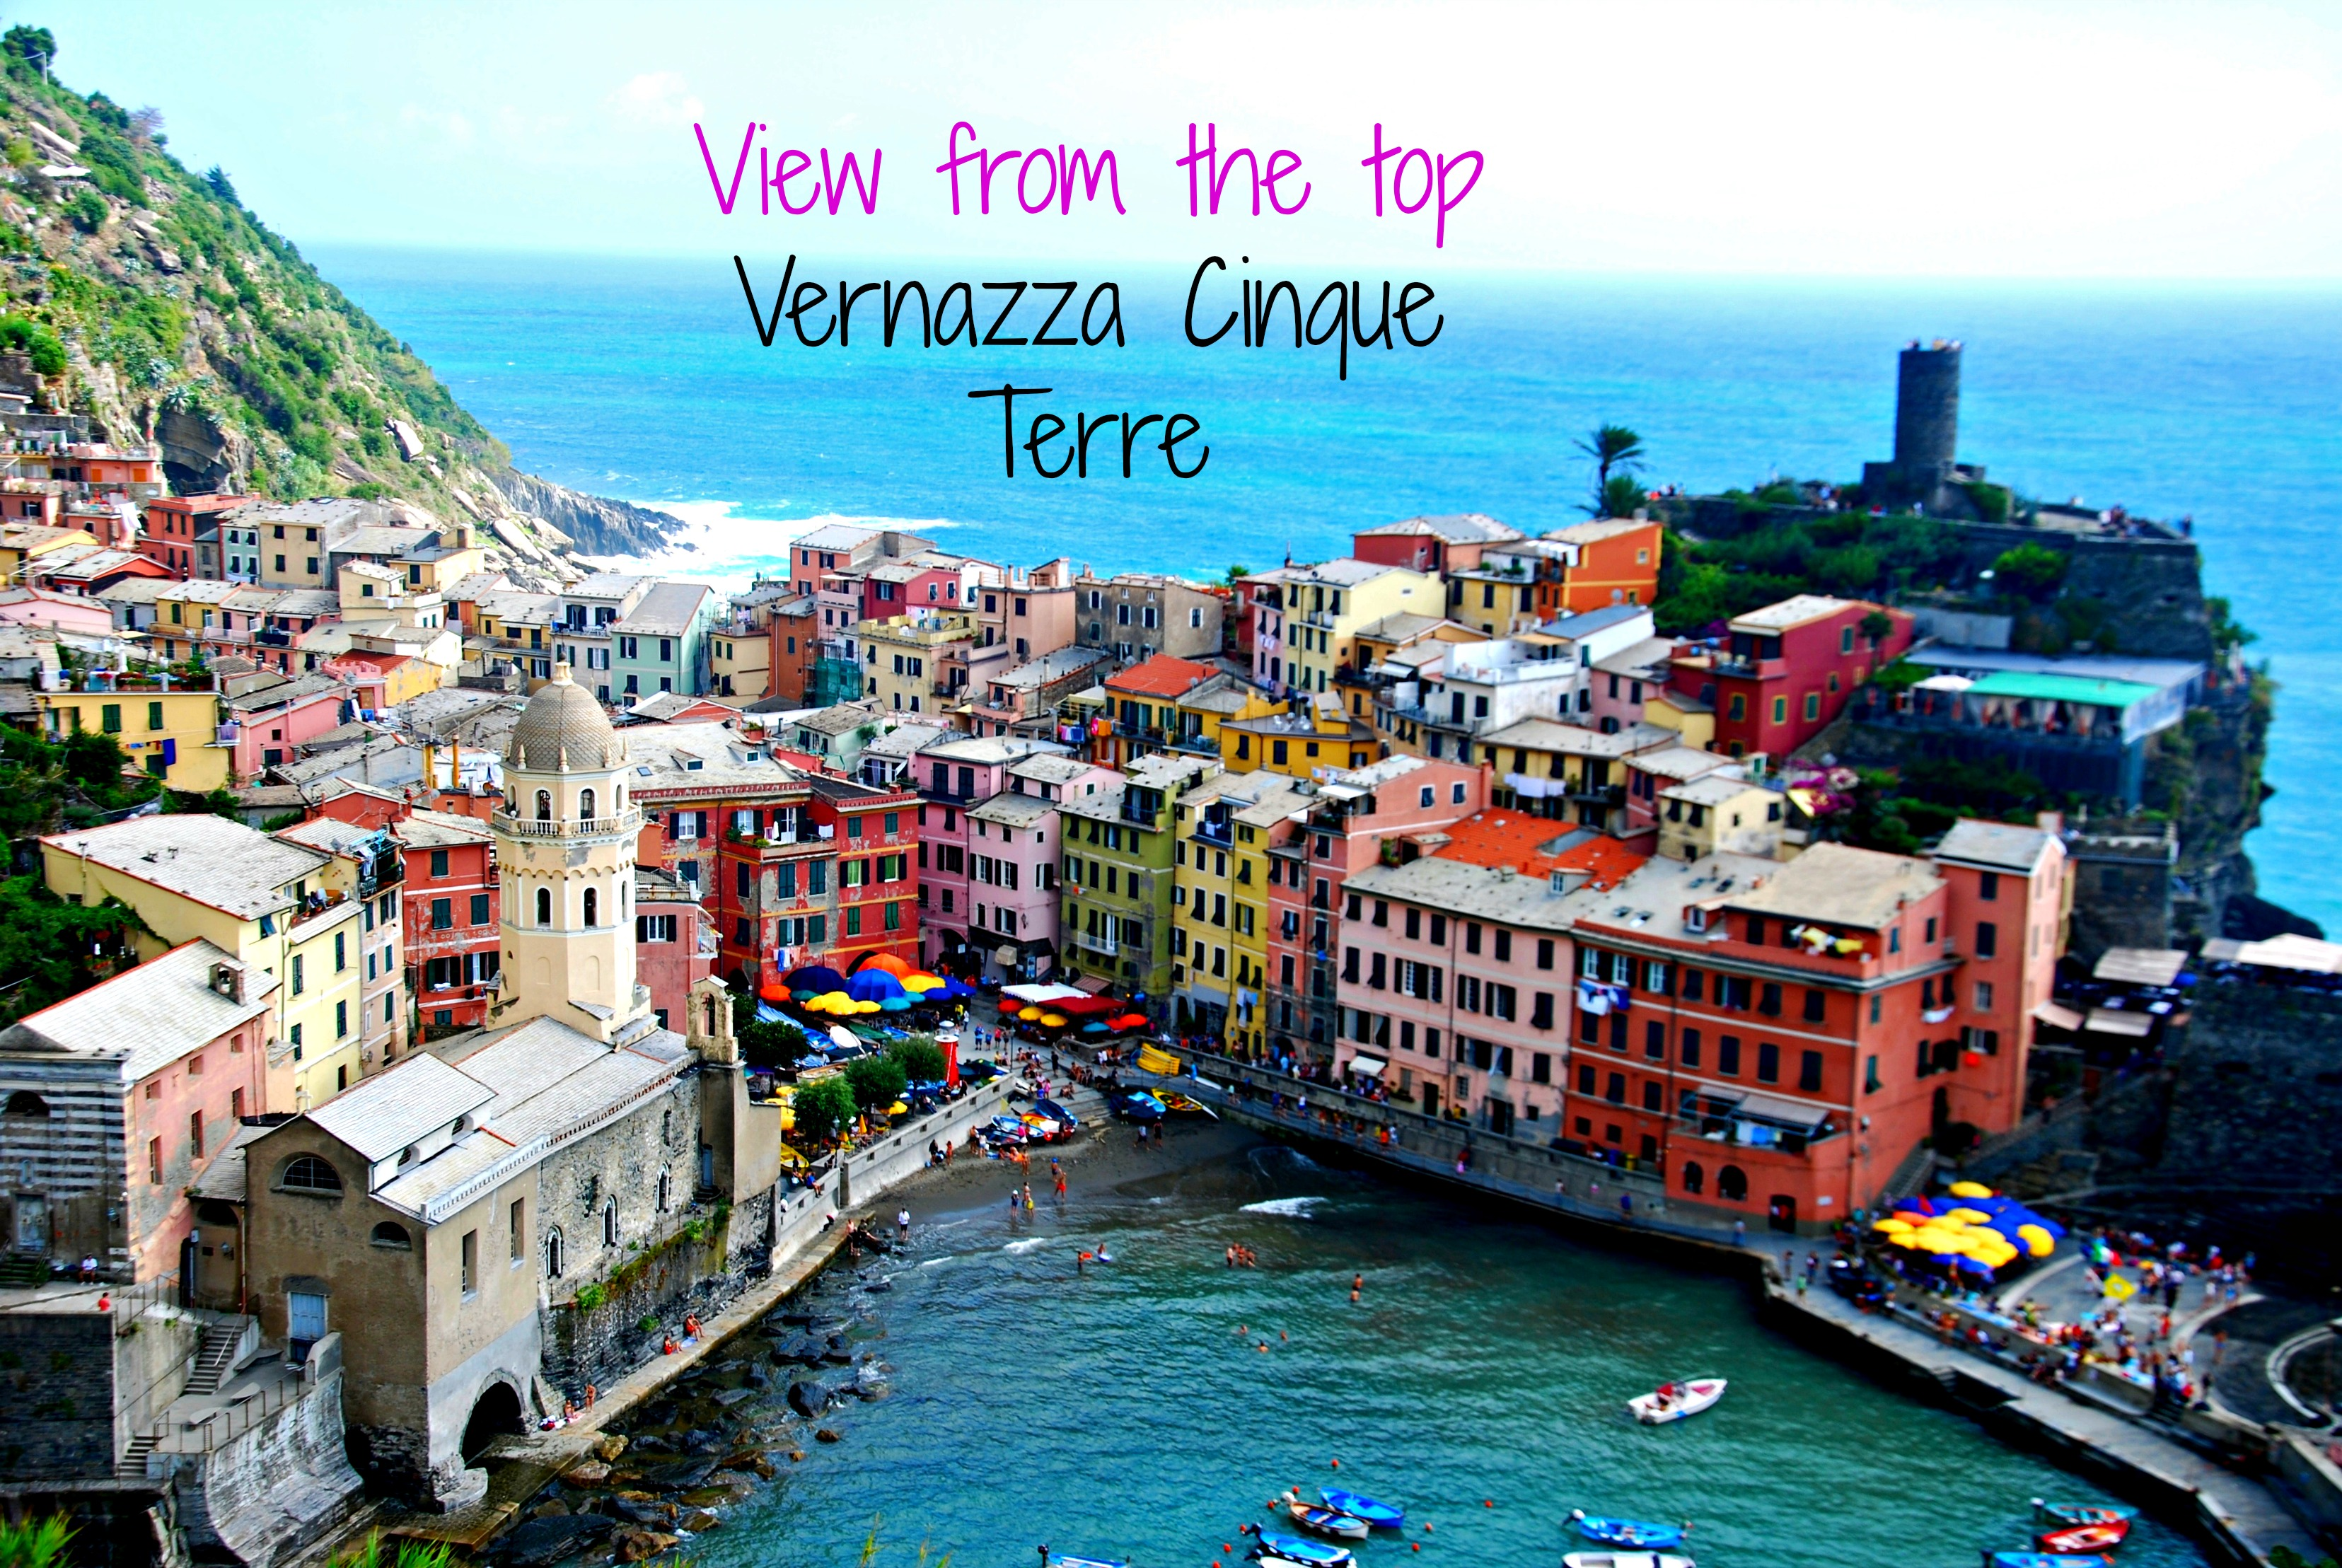 Vernazza Cinque Terre, View from the top #21 Cinque Terre Villages